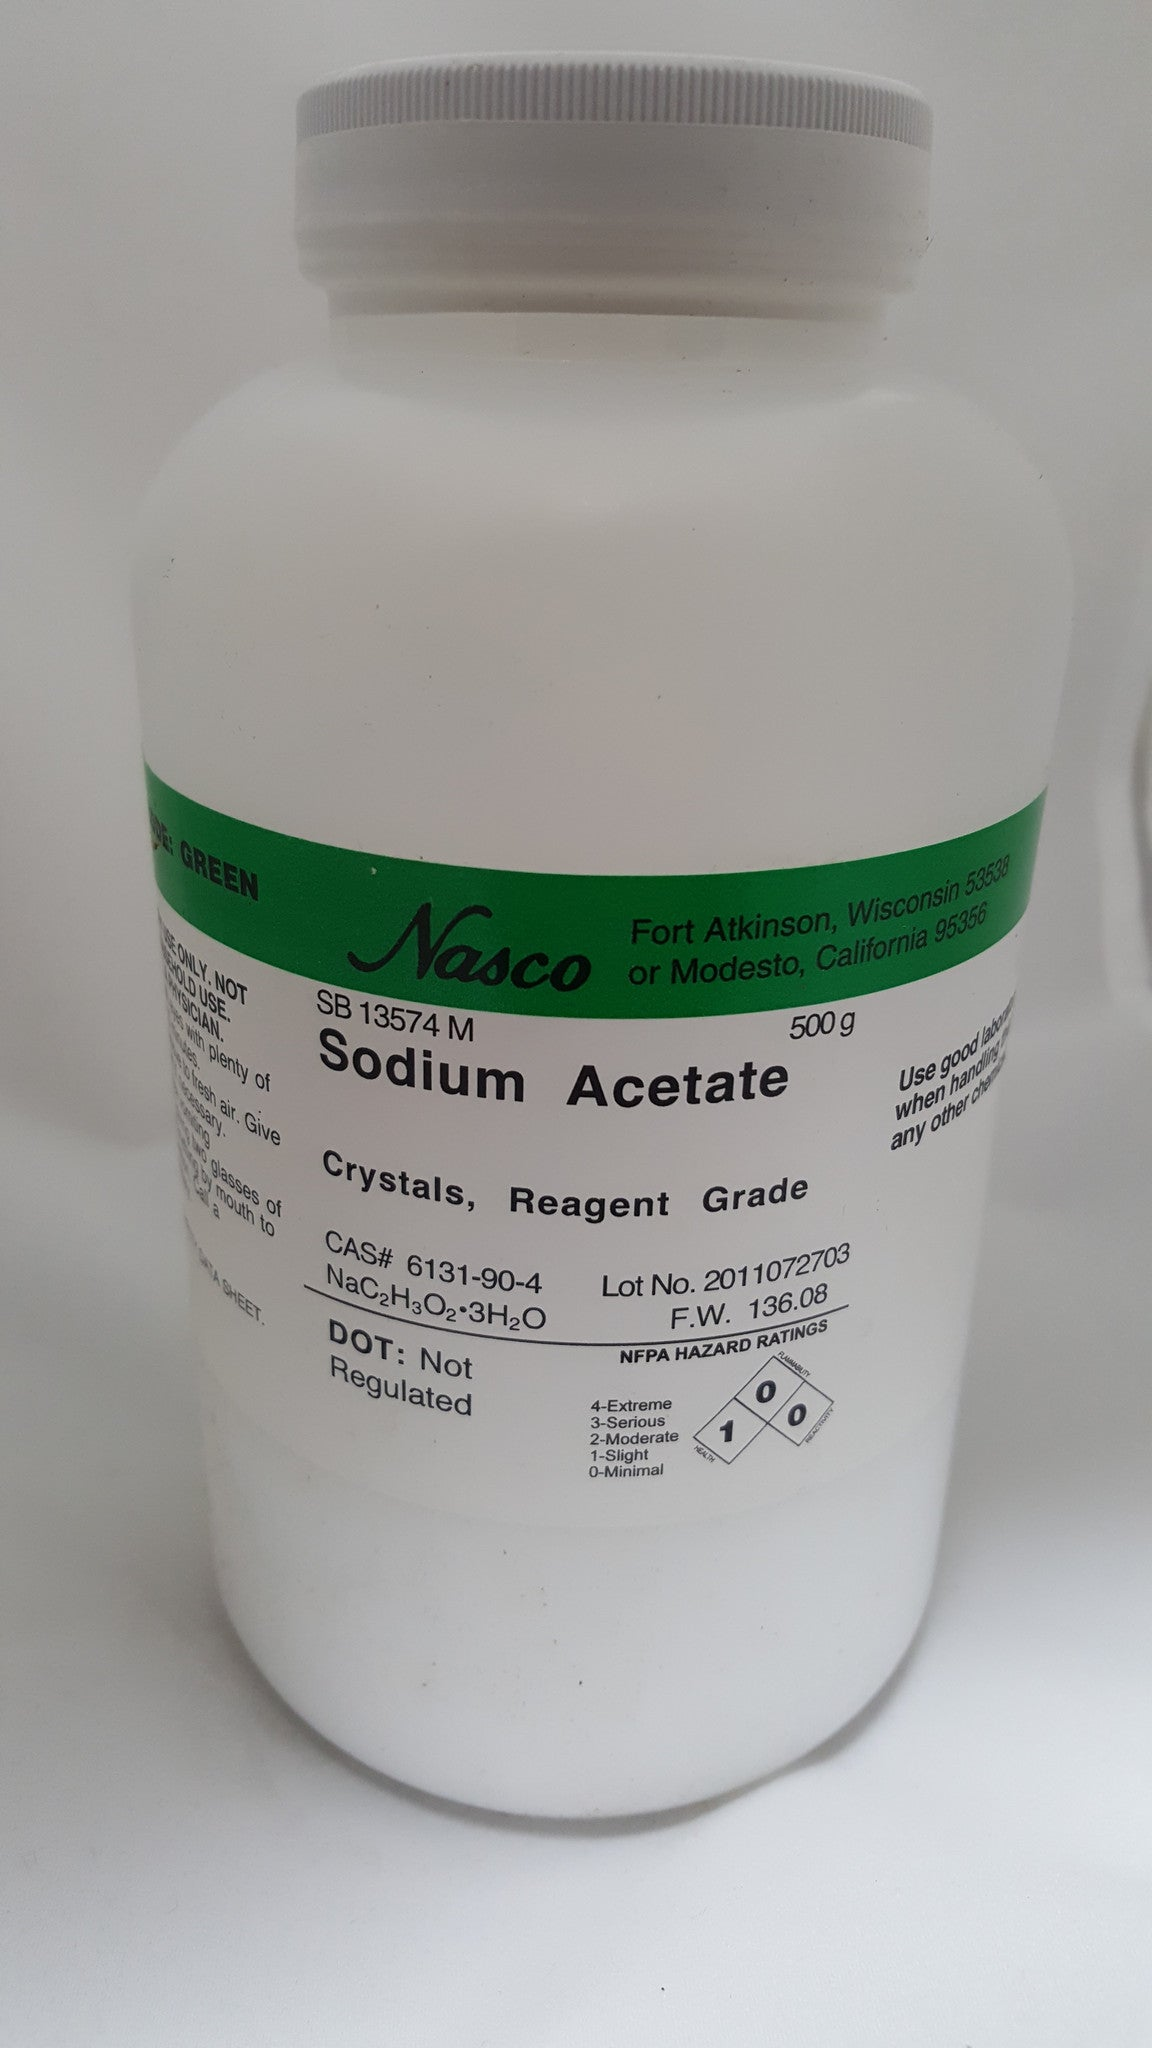 Sodium Acetate - Trihydrate 500g Reagent Grade, Crystals